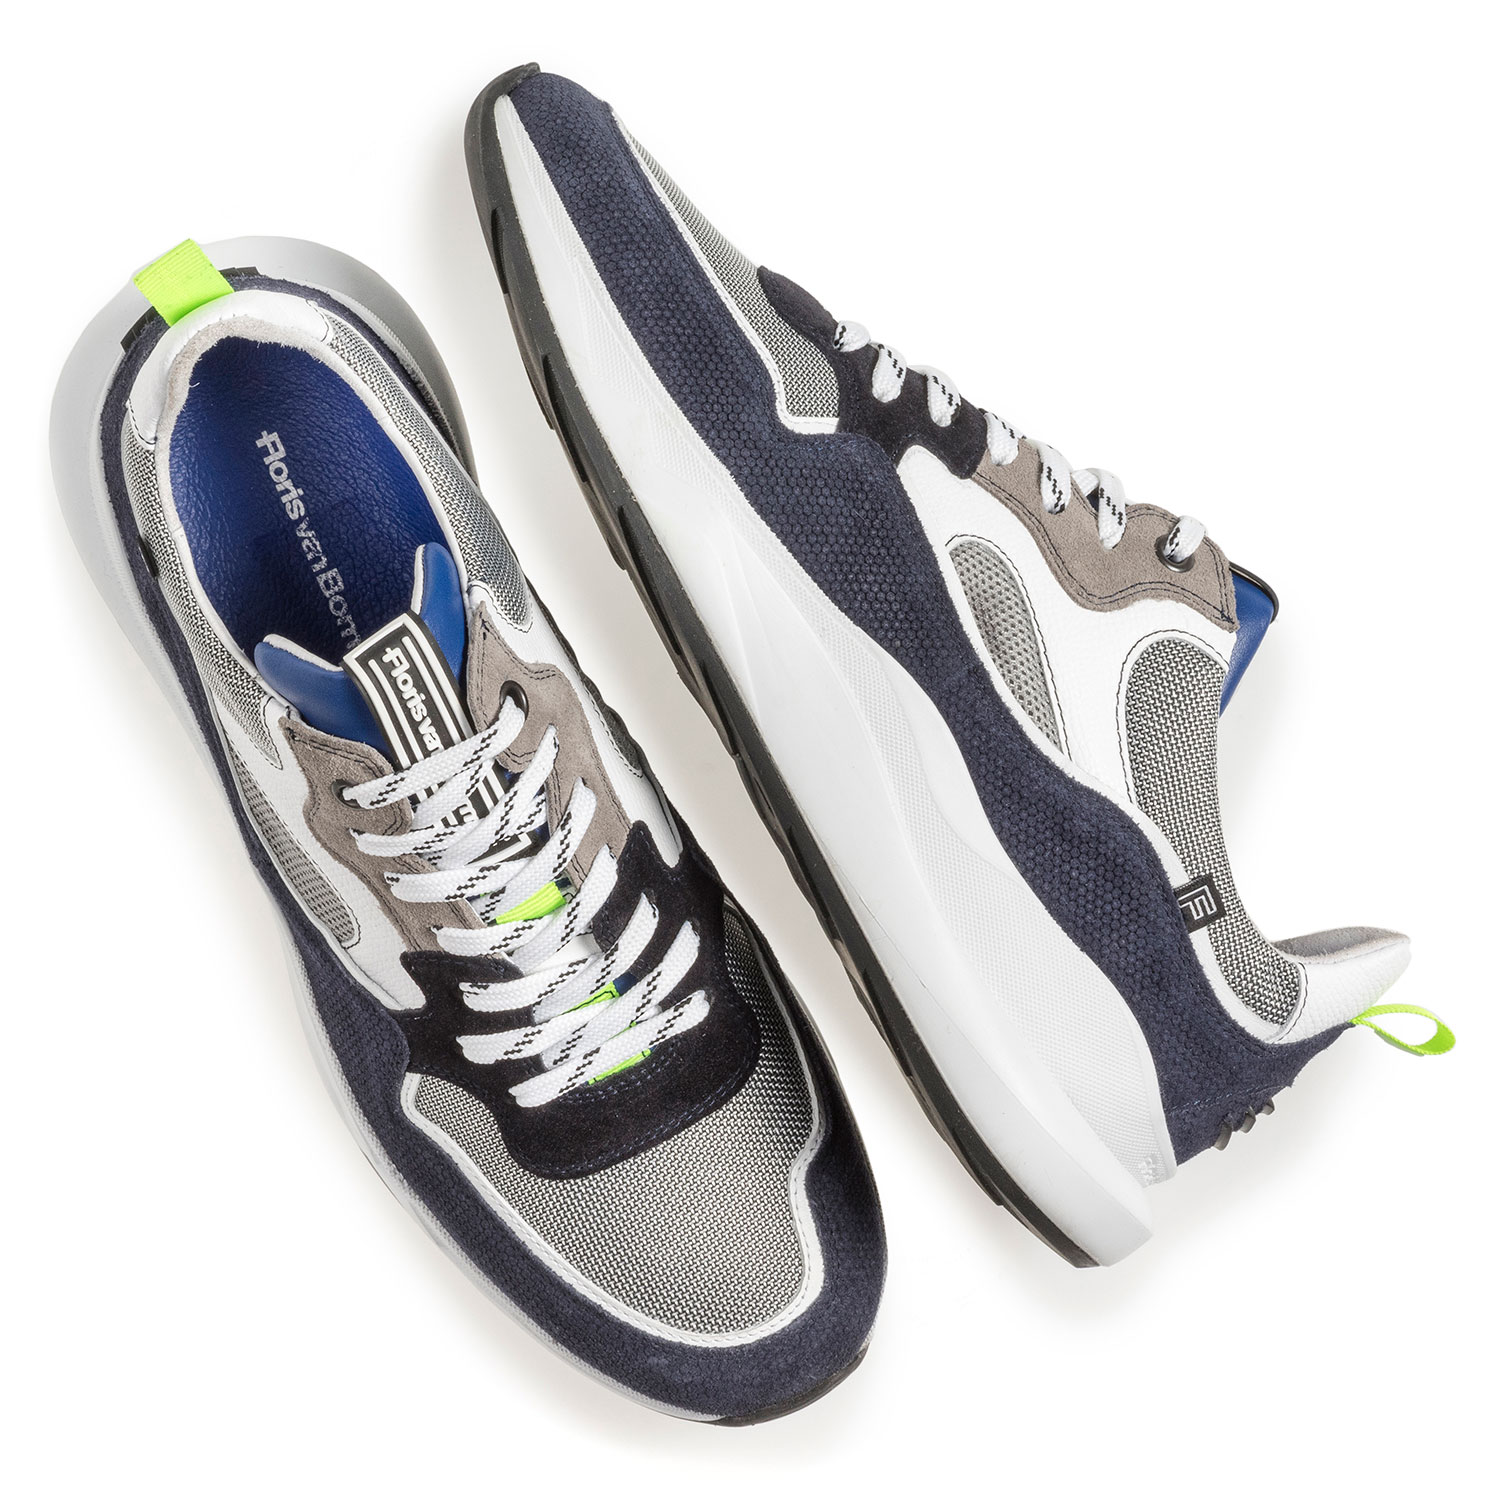 16269/18 - Blue and grey suede leather sneaker